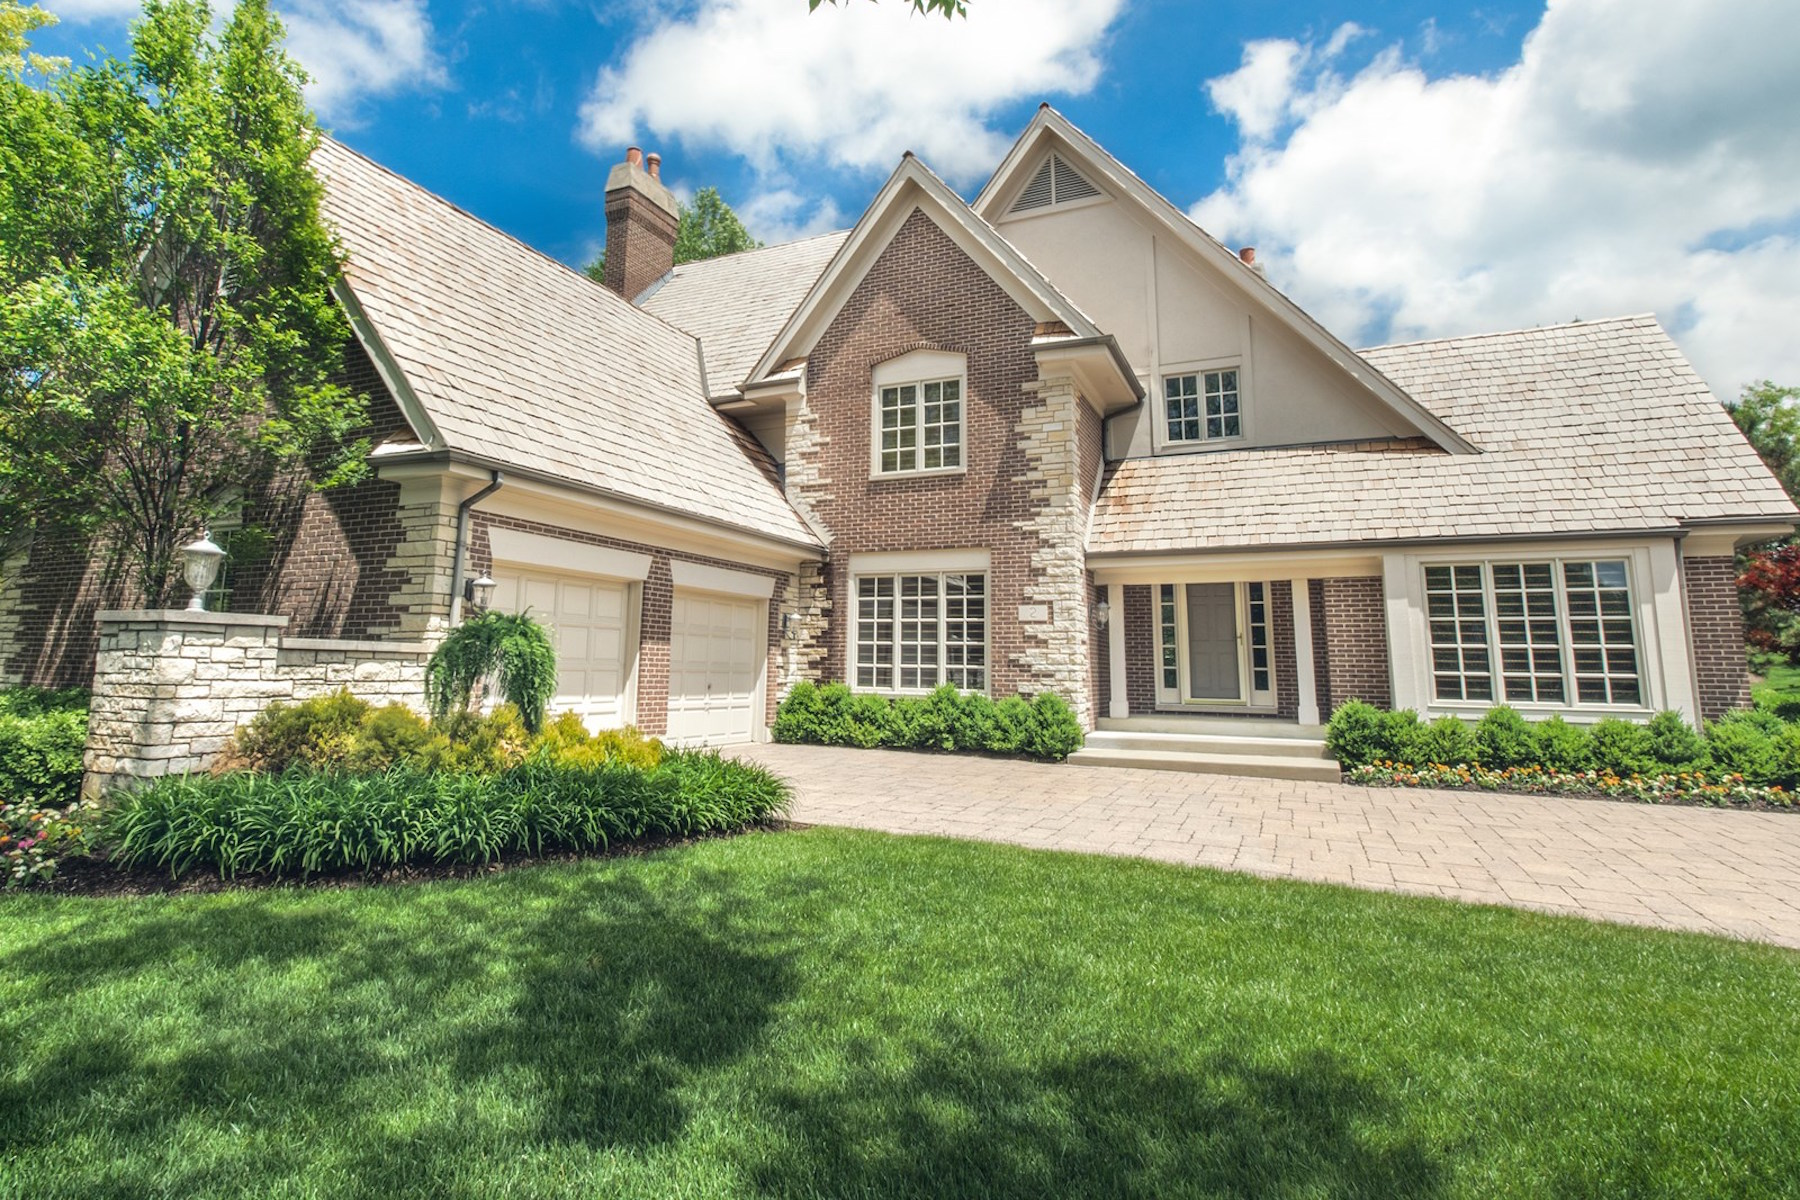 Single Family Home for Sale at Contemporary Downtown Vibes 2 Graystone Court North Barrington, Illinois, 60010 United States